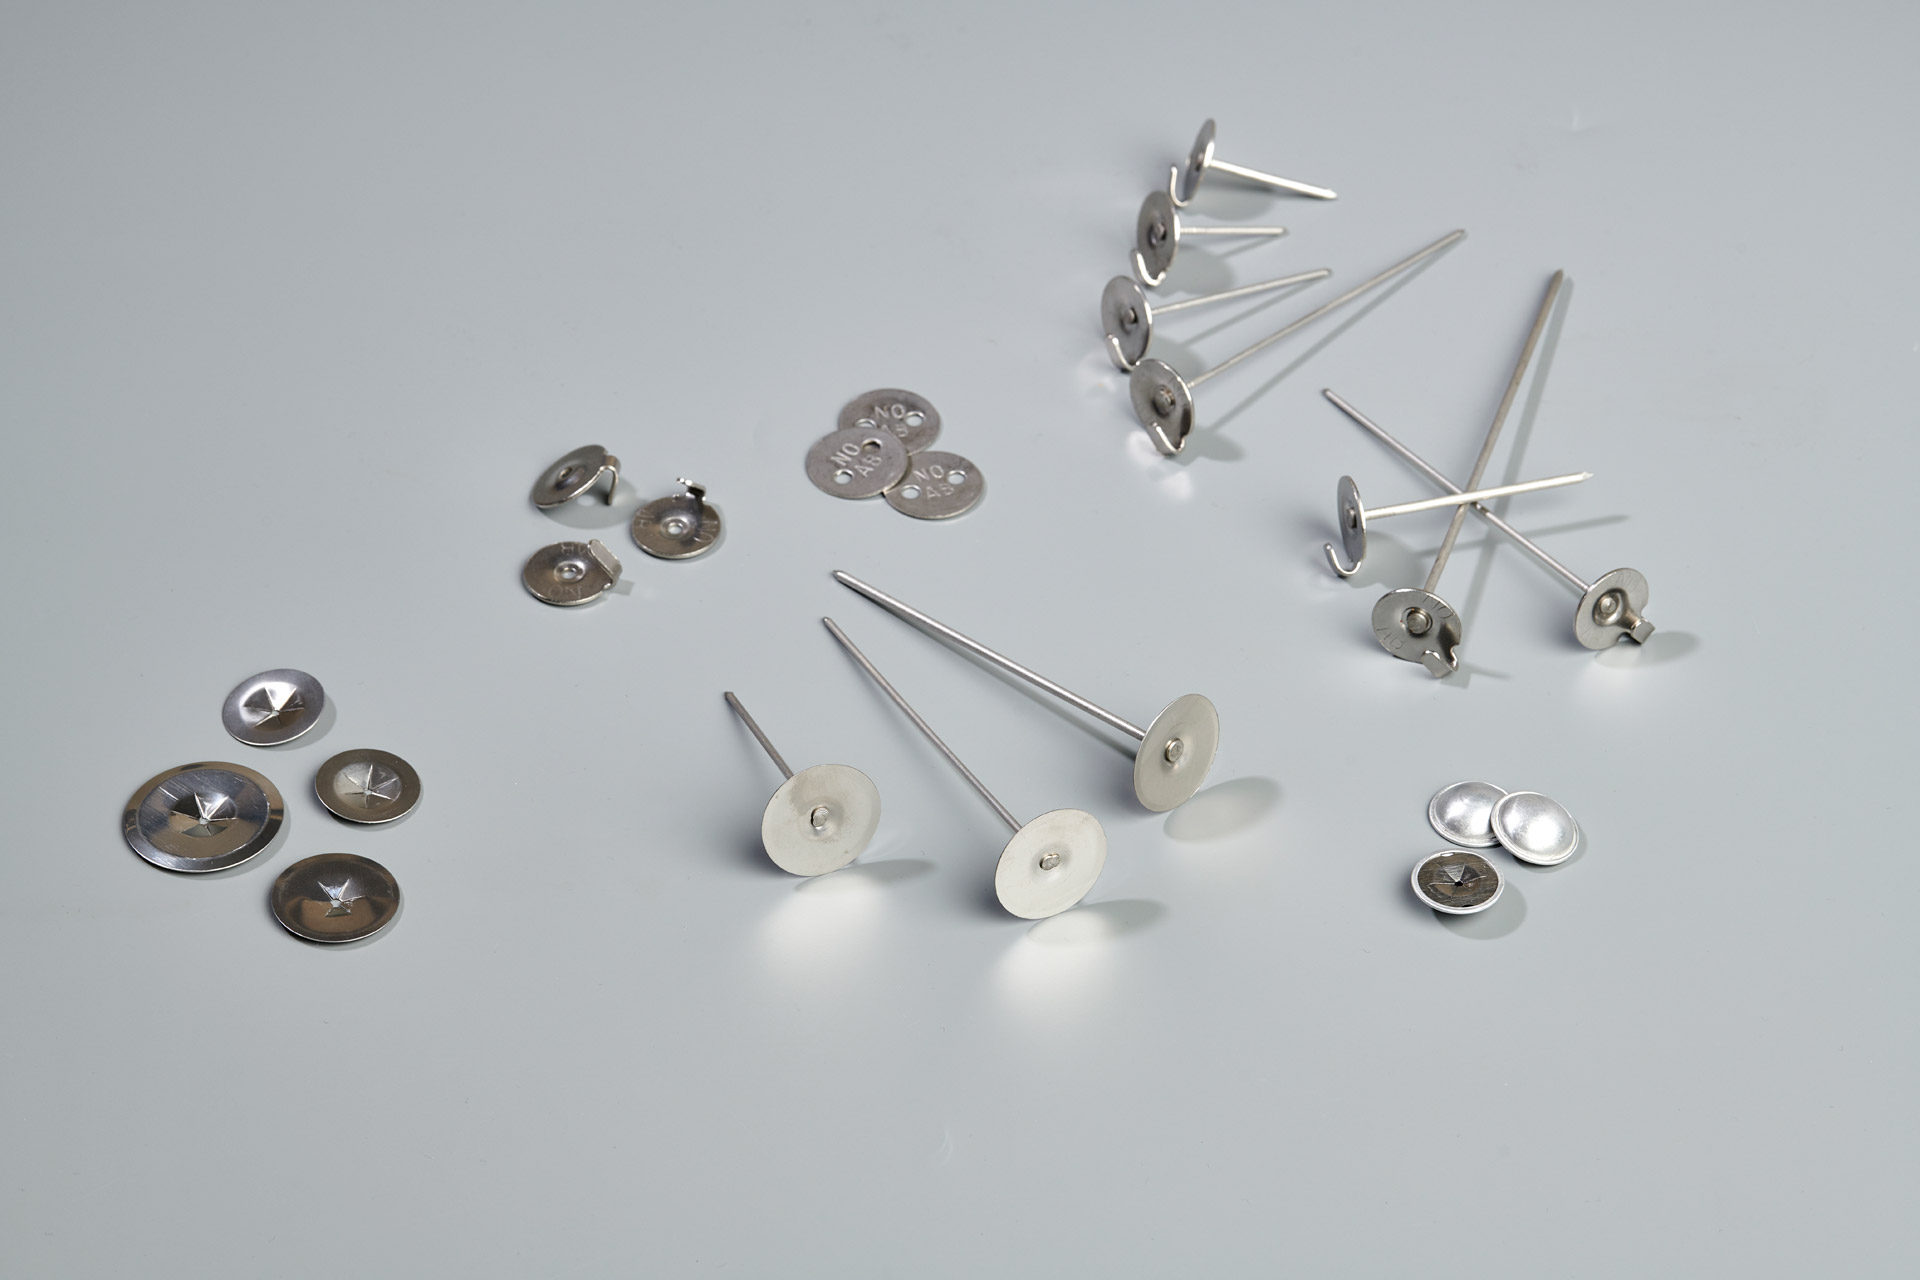 Anchors, Pins, Washers & Accessories - ACS Industries